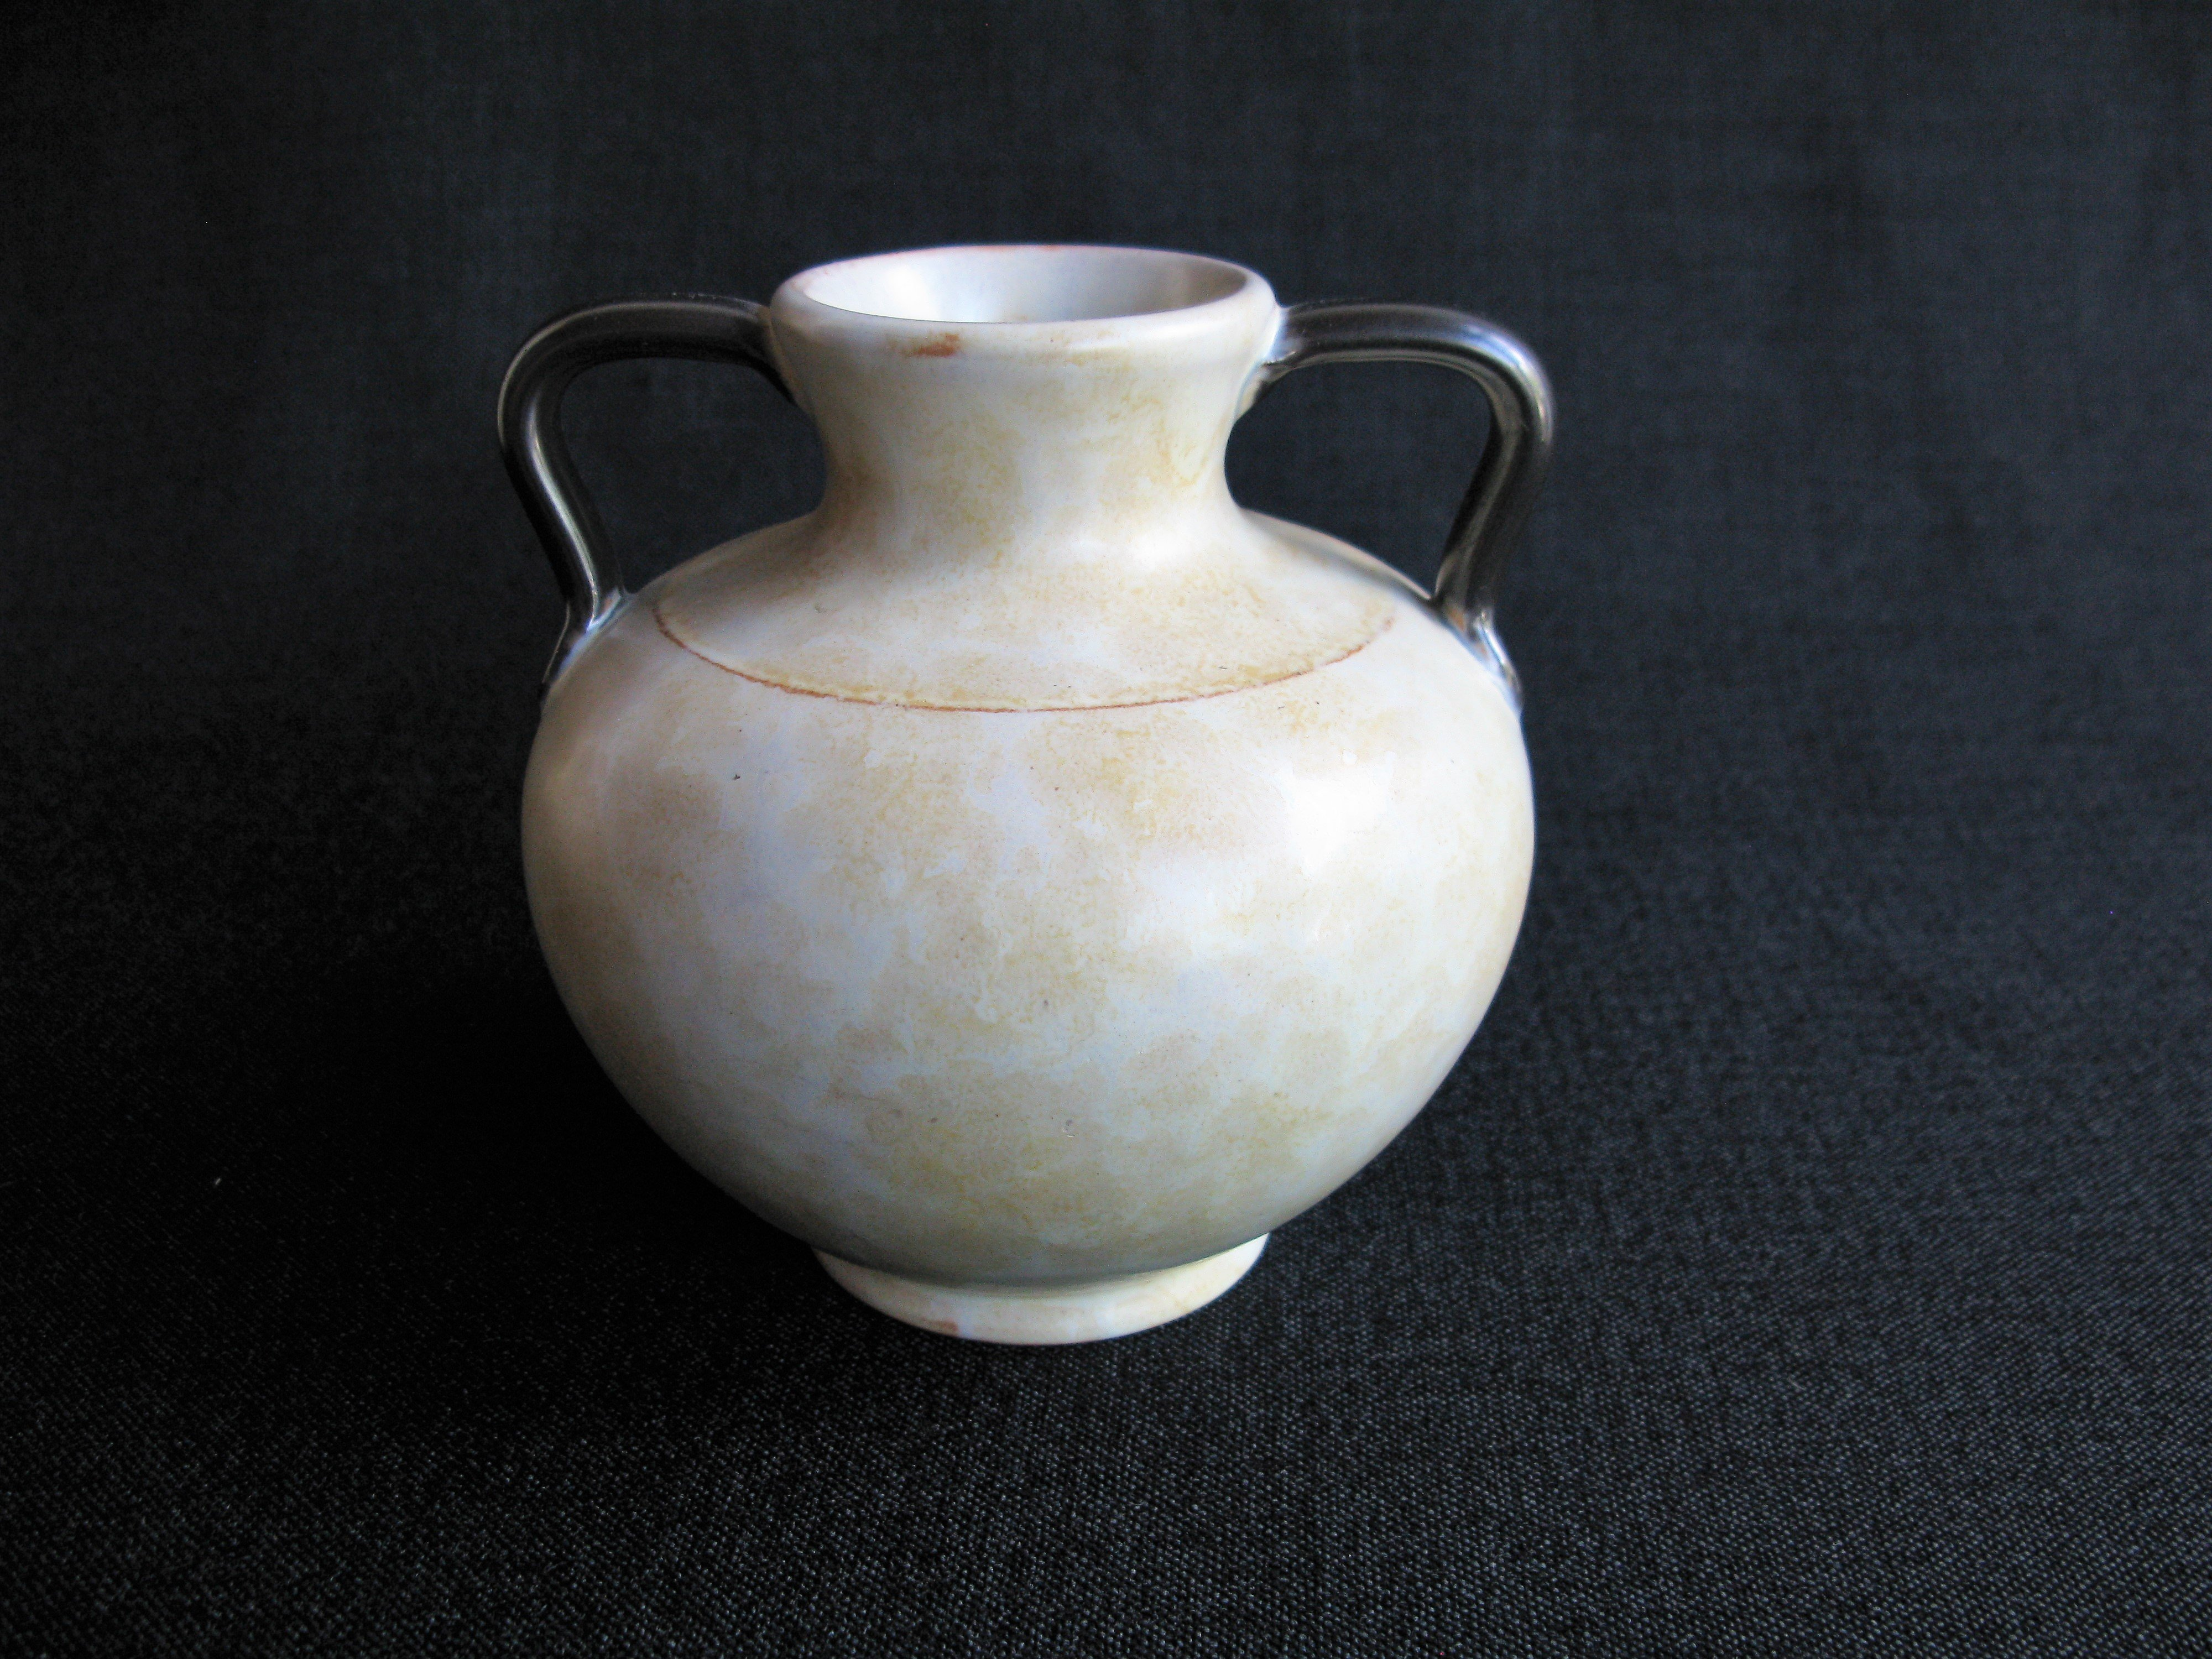 yellowish/brown vase 3201/1